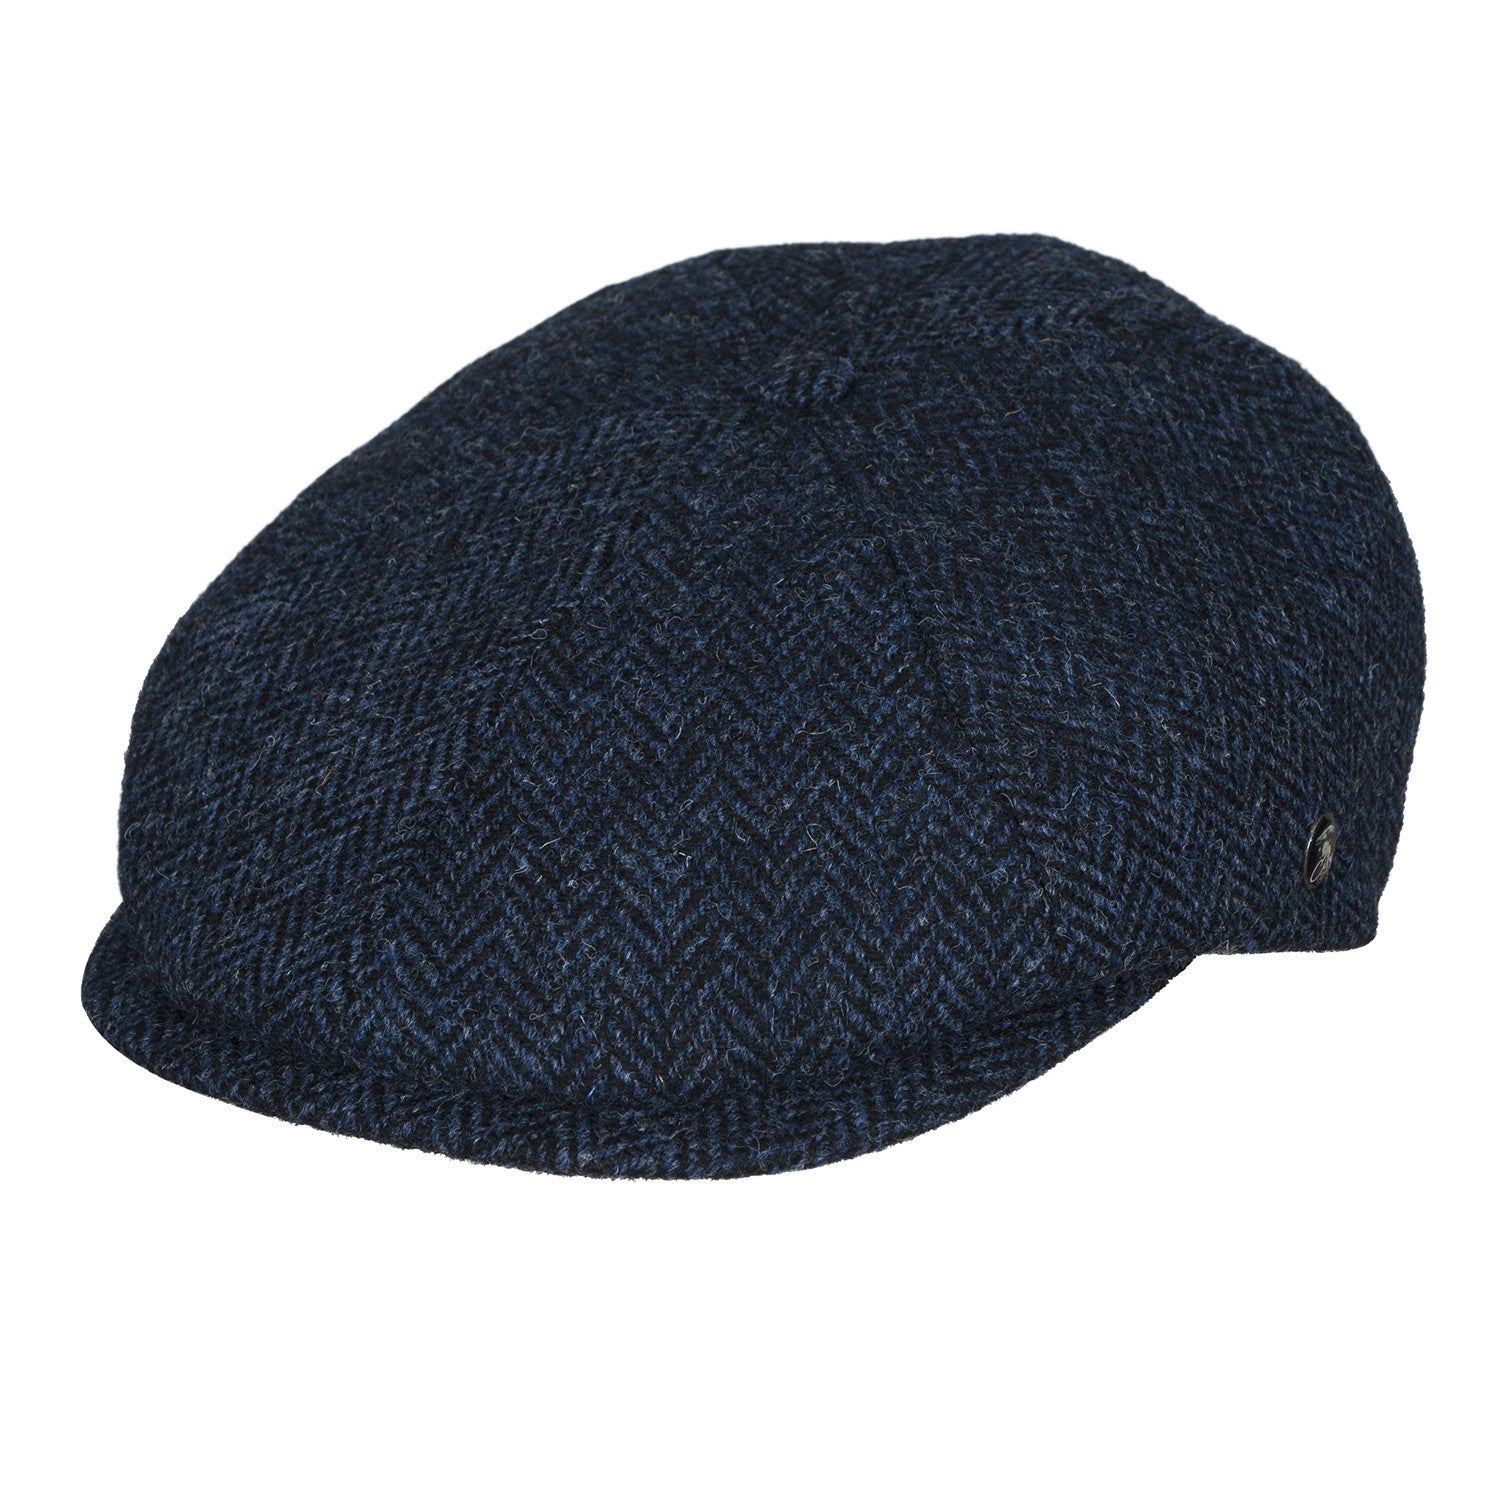 City Sport - Harris Tweed 6 Piece News Boy Cap - Stranraer 3057 ... c7b6201e78f